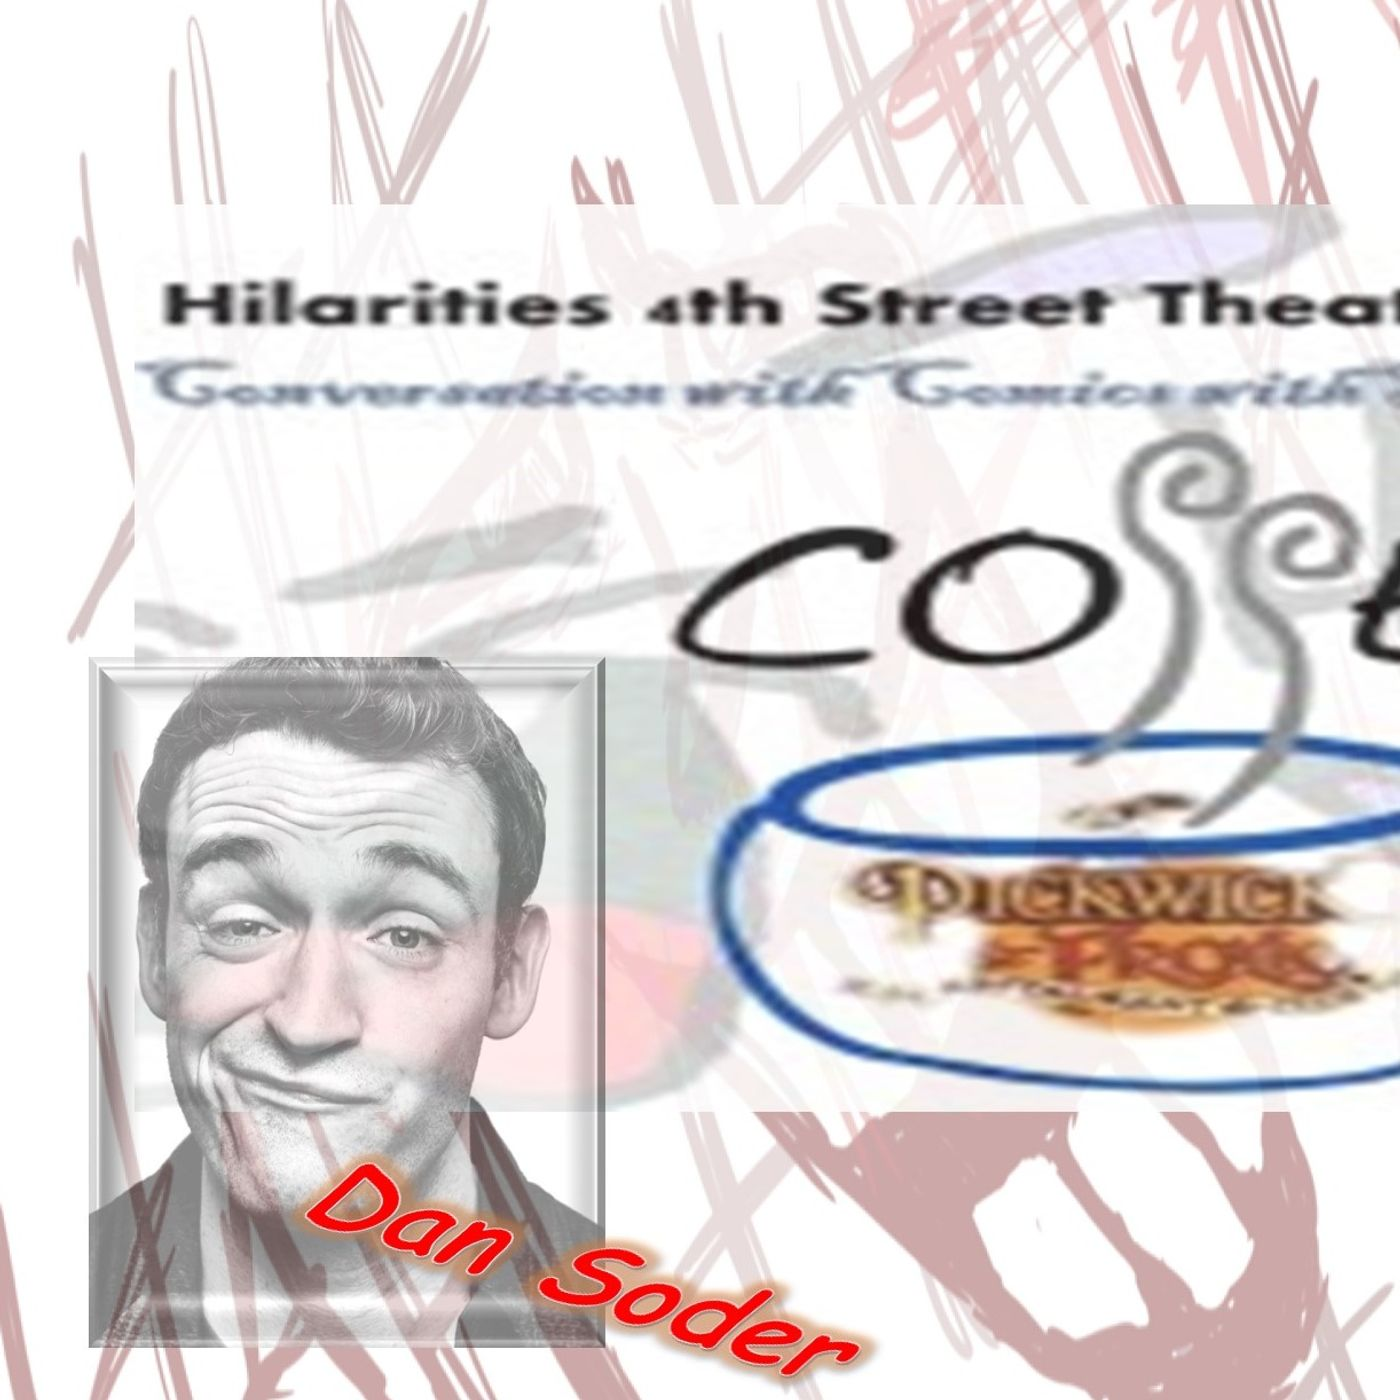 Dan Soder Conversation with Comics with NOCOFFEE 6_28_19